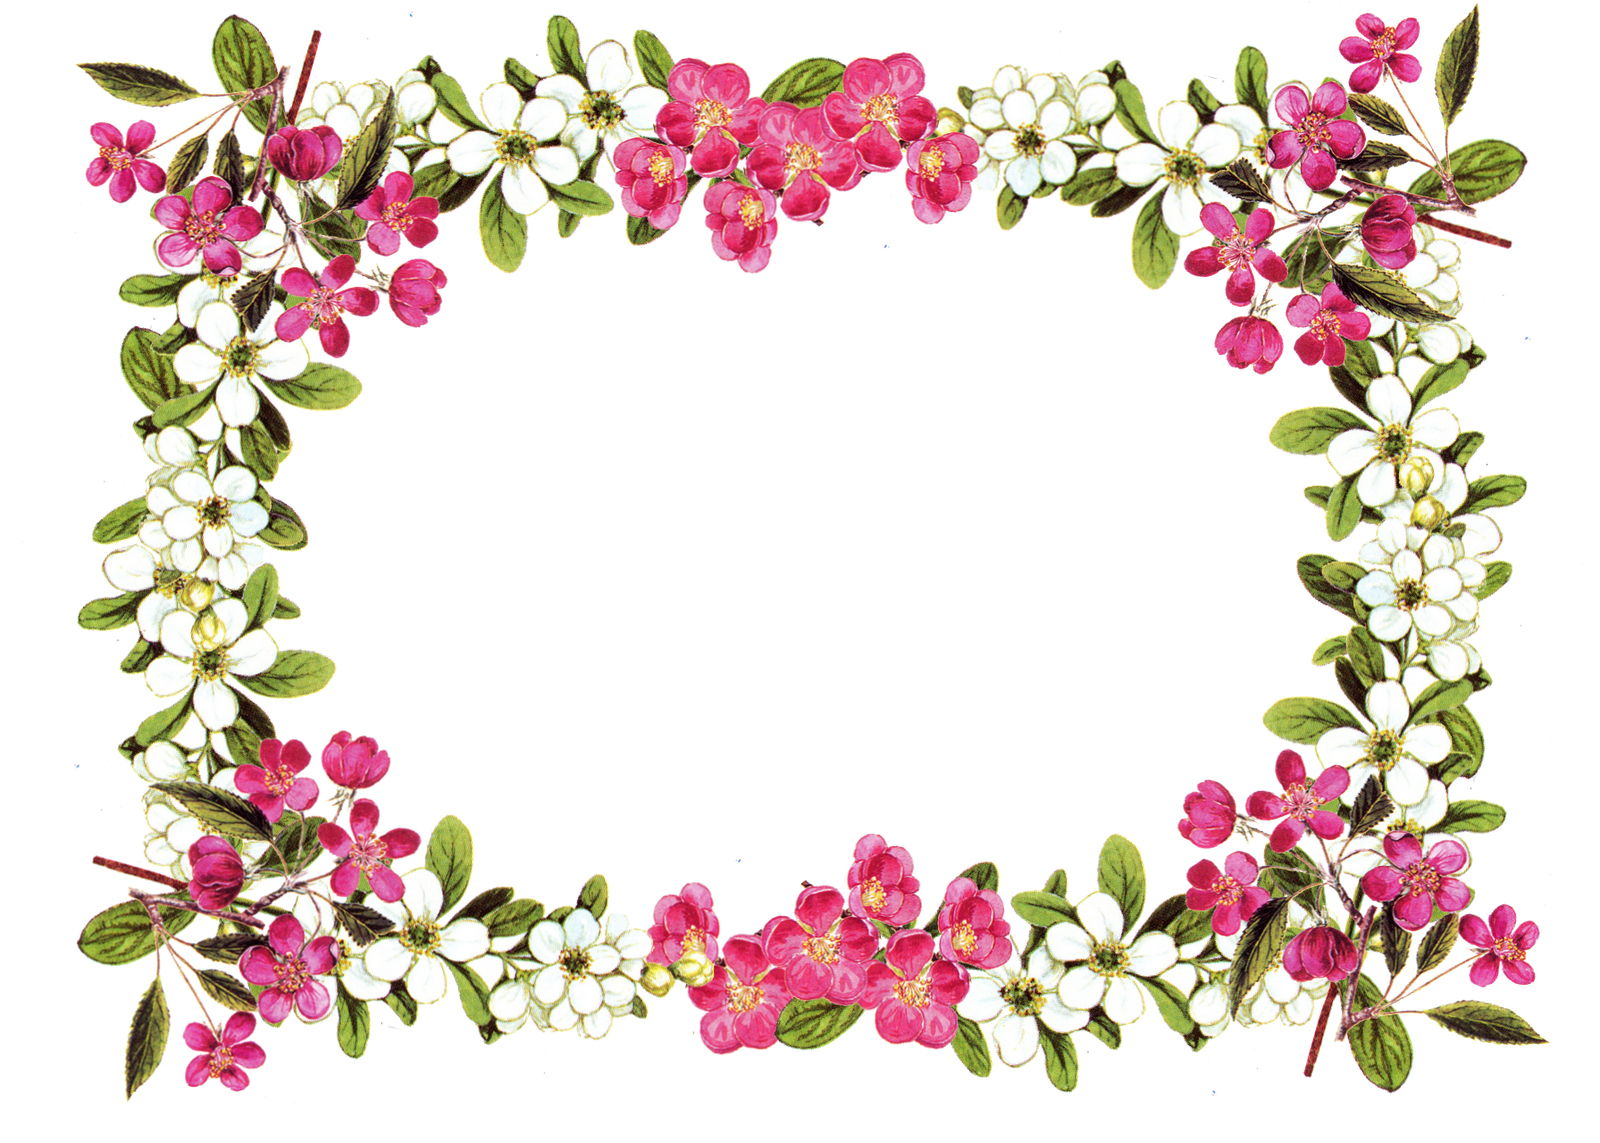 pin by adele gilmore on wow pinterest borders free flower frame rh pinterest com clipart flower border black and white clip art flower borders for funeral programs